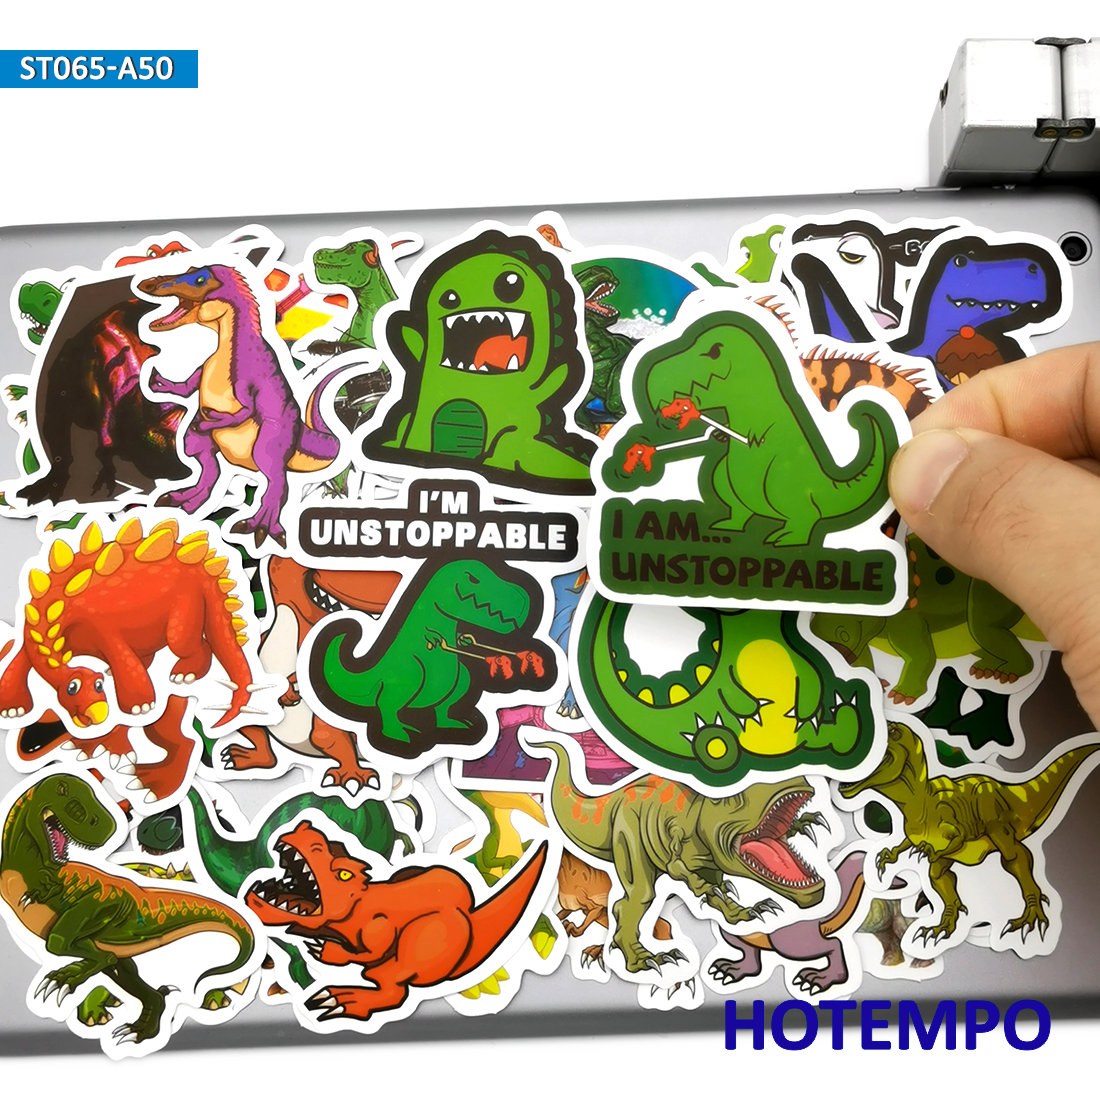 50pcs Cute Anime Dinosaurs Stickers Toy For Children Kids Gift Scrapbooking Stationery Mobile Phone Laptop Cartoon Dino Stickers